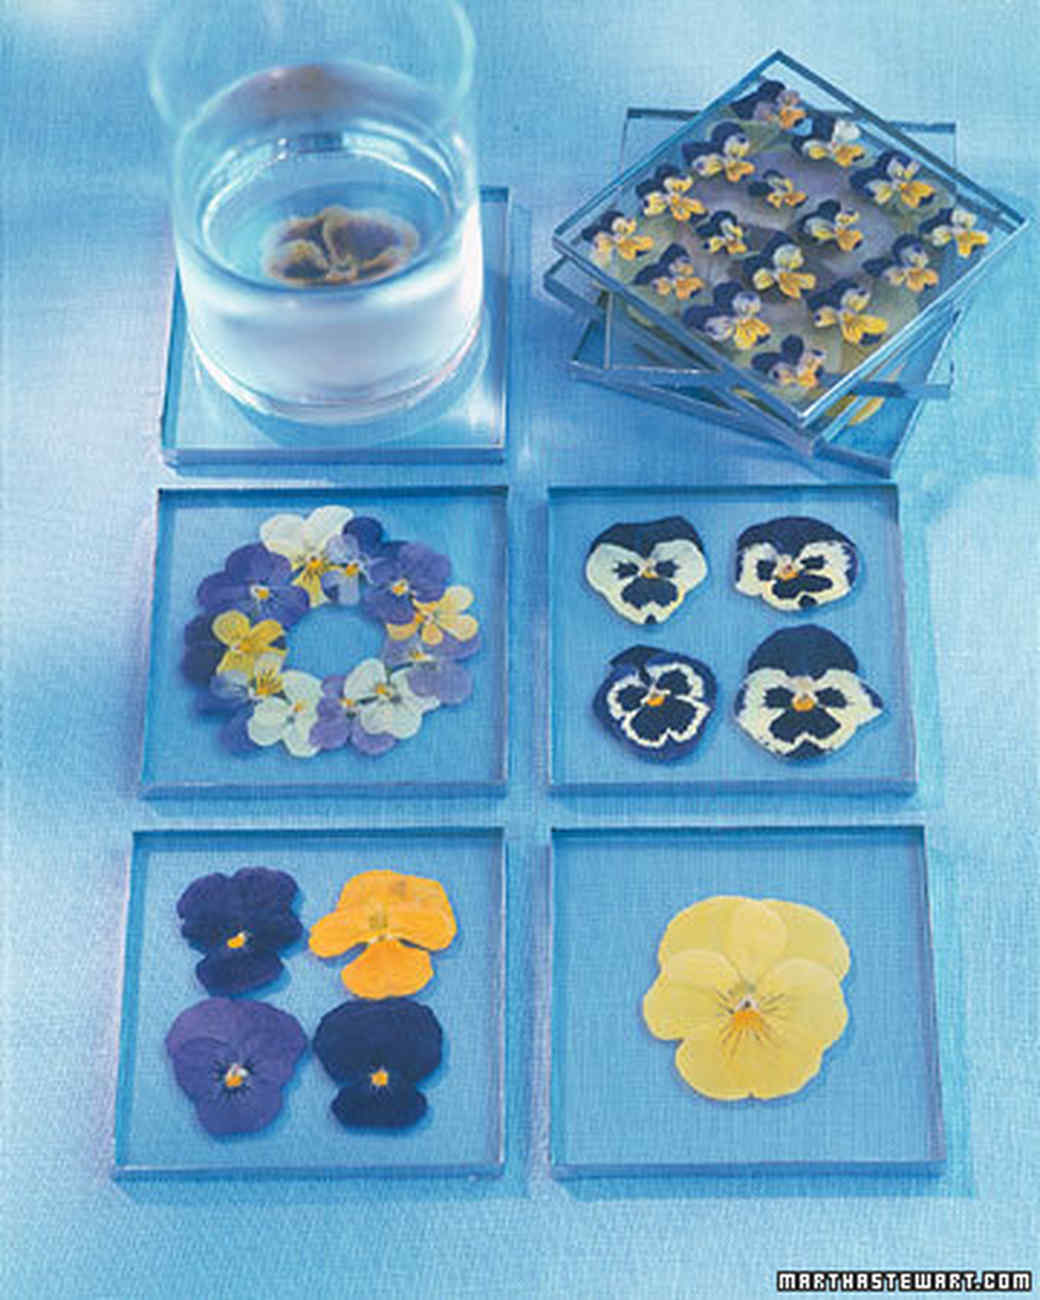 Pressed-Pansy Coasters